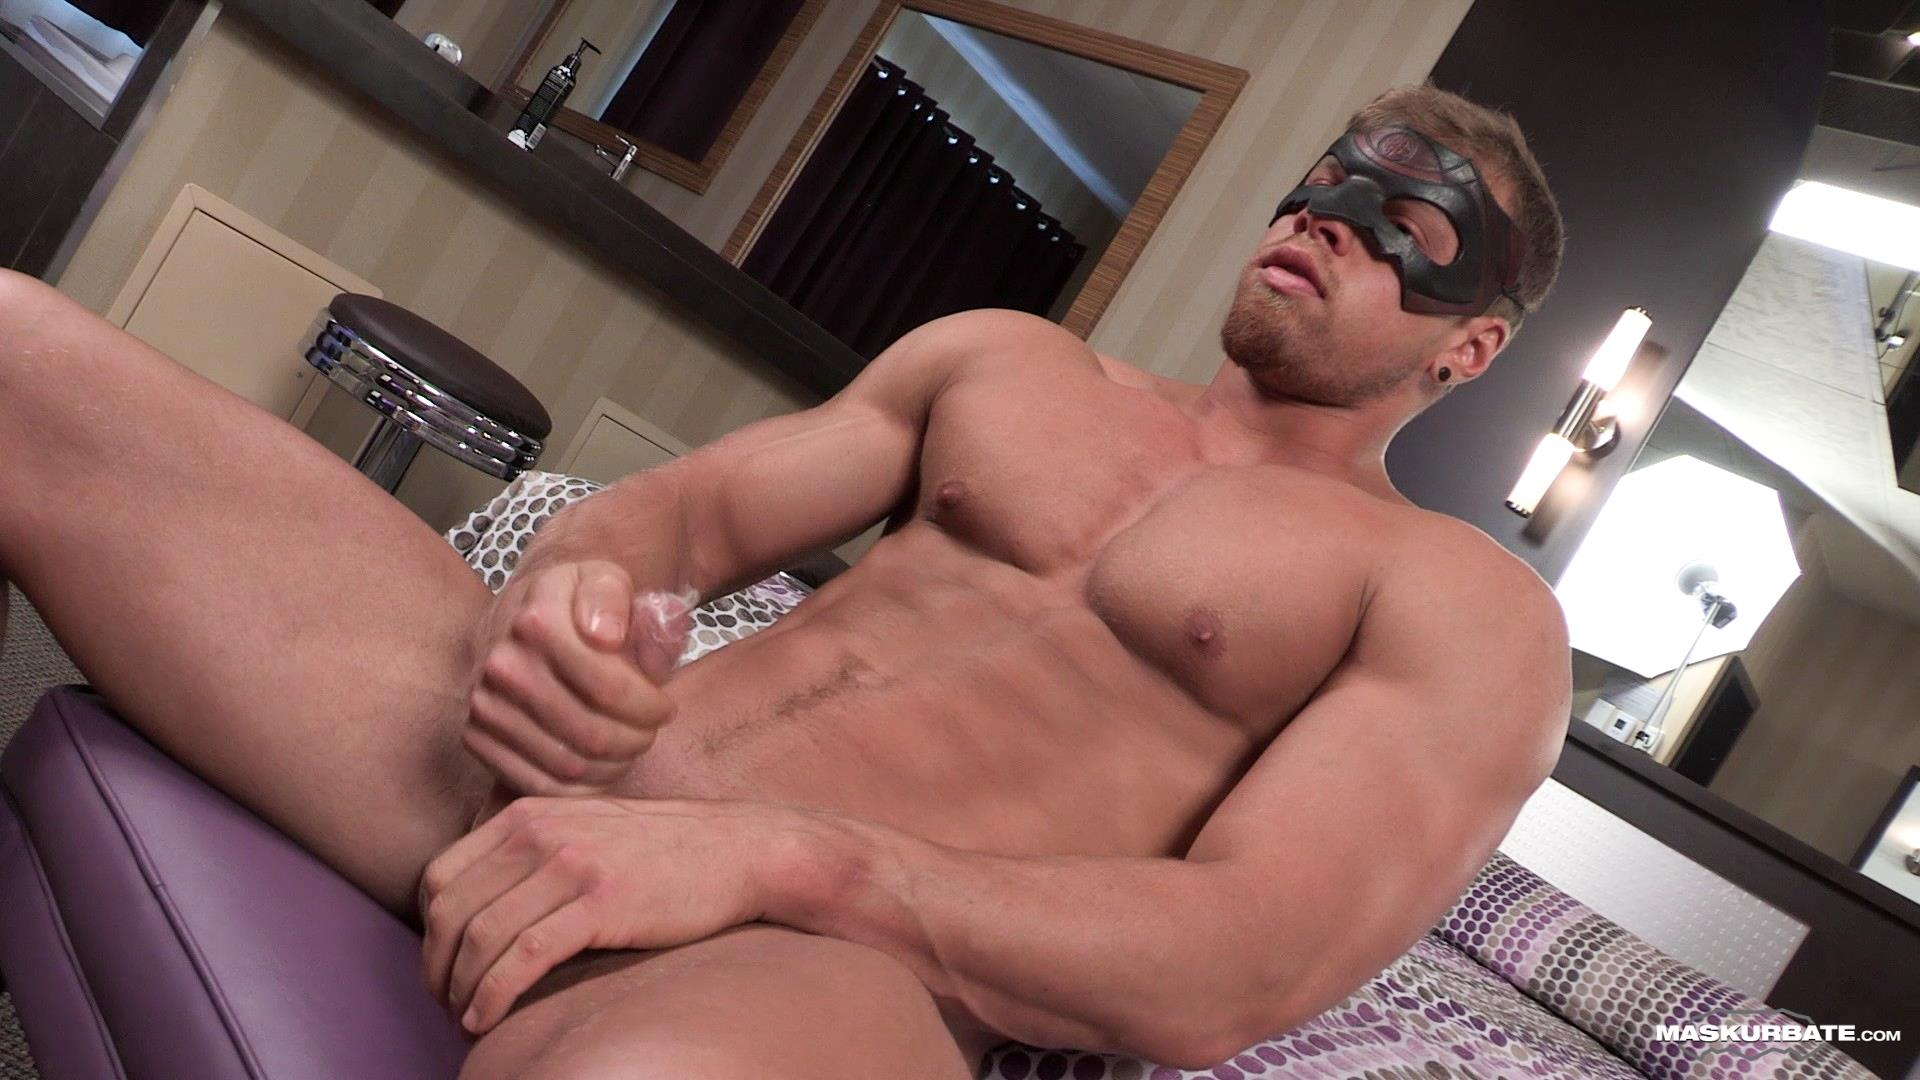 Maskurbate-Brad-and-Pascal-Muscle-Hunk-Jerking-Off-In-A-Condom-08 Straight Masked Muscle Hunk Gets Paid To Jerk Off In A Condom